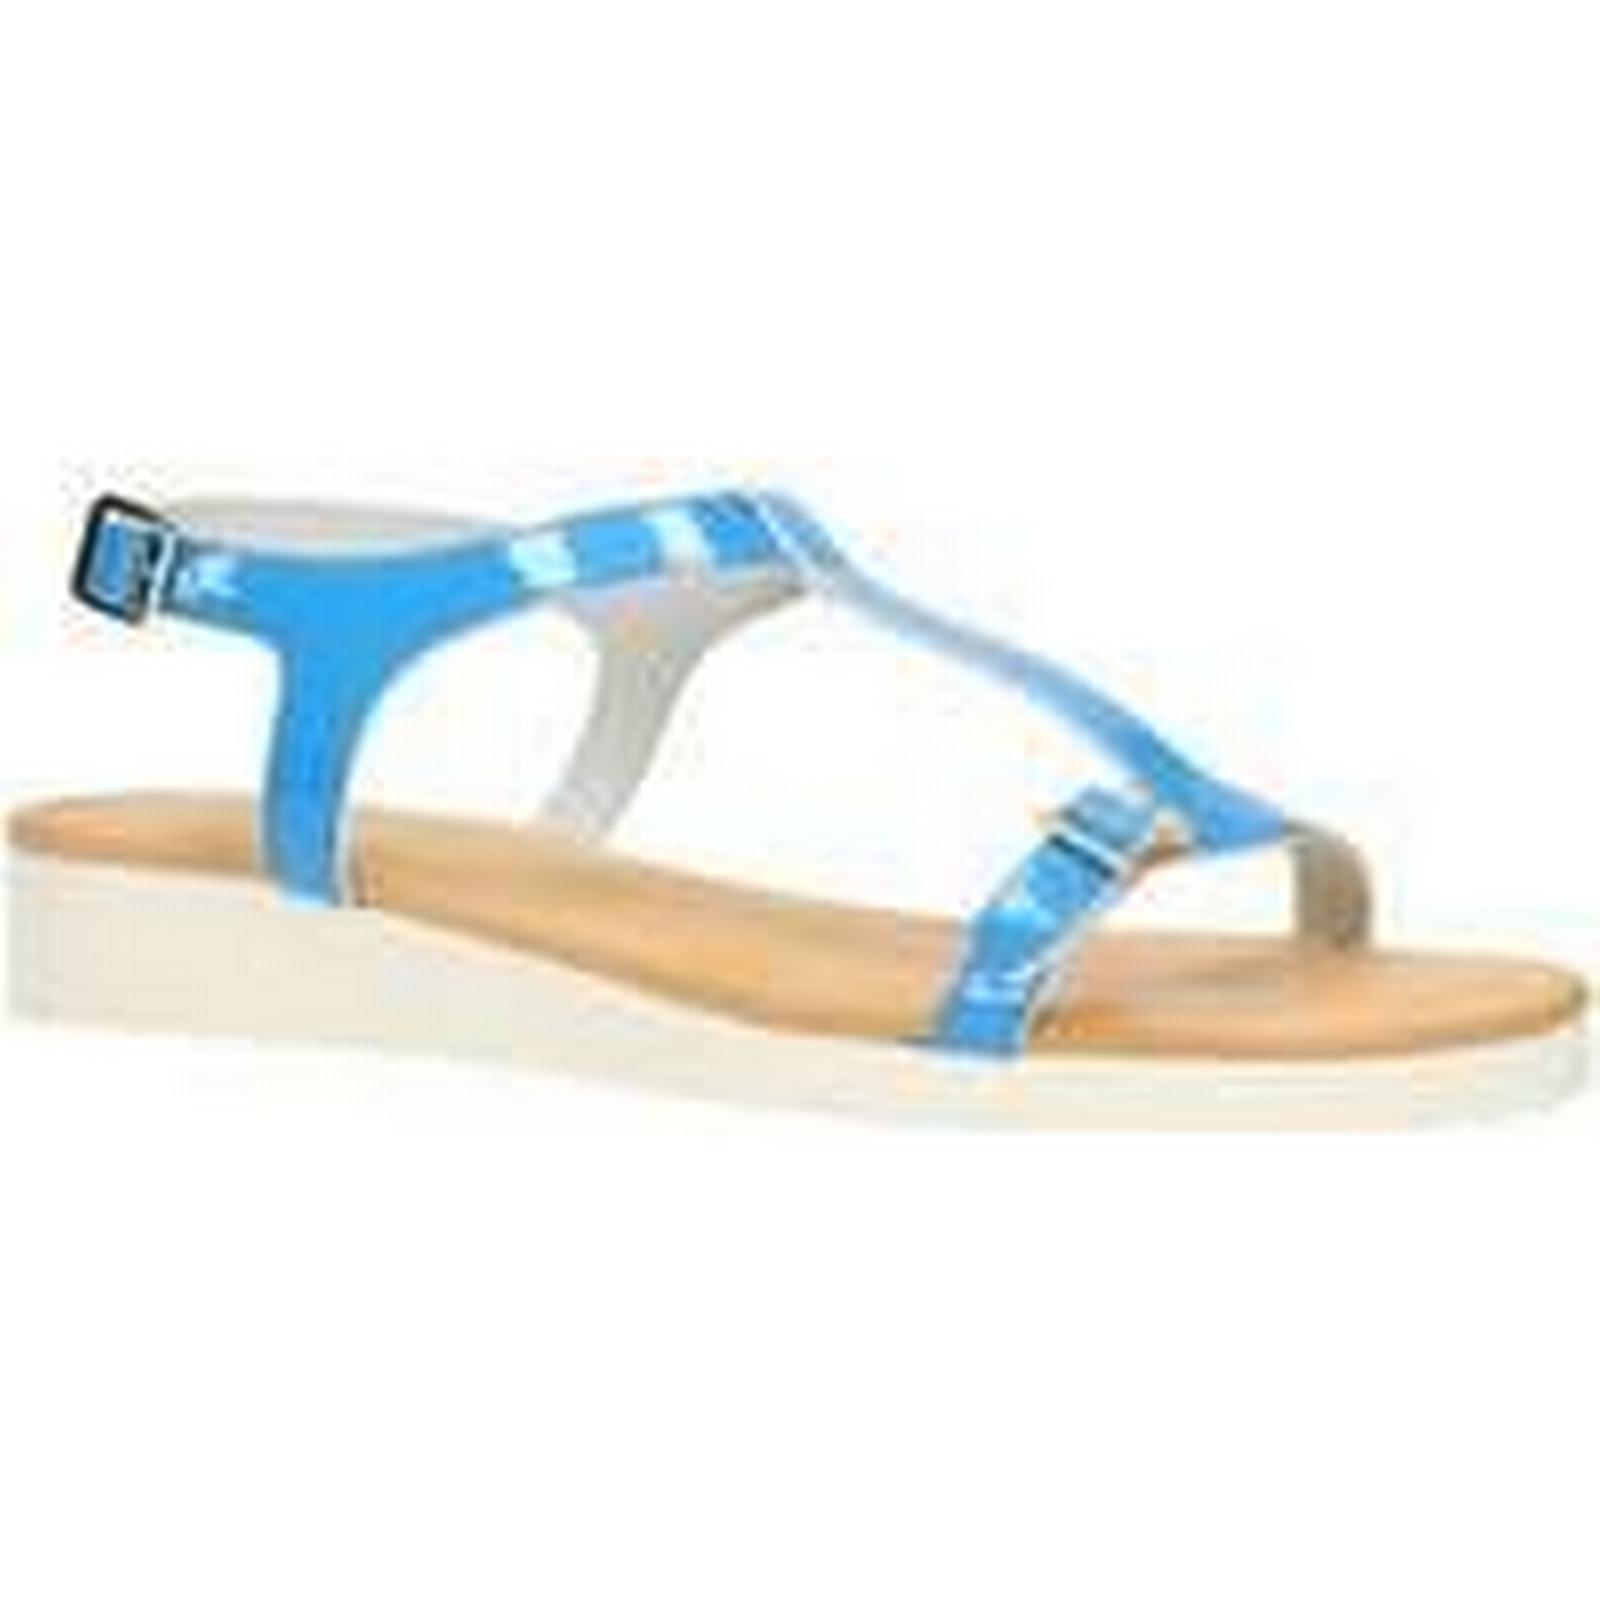 Spartoo.co.uk Gino Rossi Spring/Summer Sandals DN670M Blue Woman Spring/Summer Rossi Collection 2018 women's Sandals in Blue 8f07e4